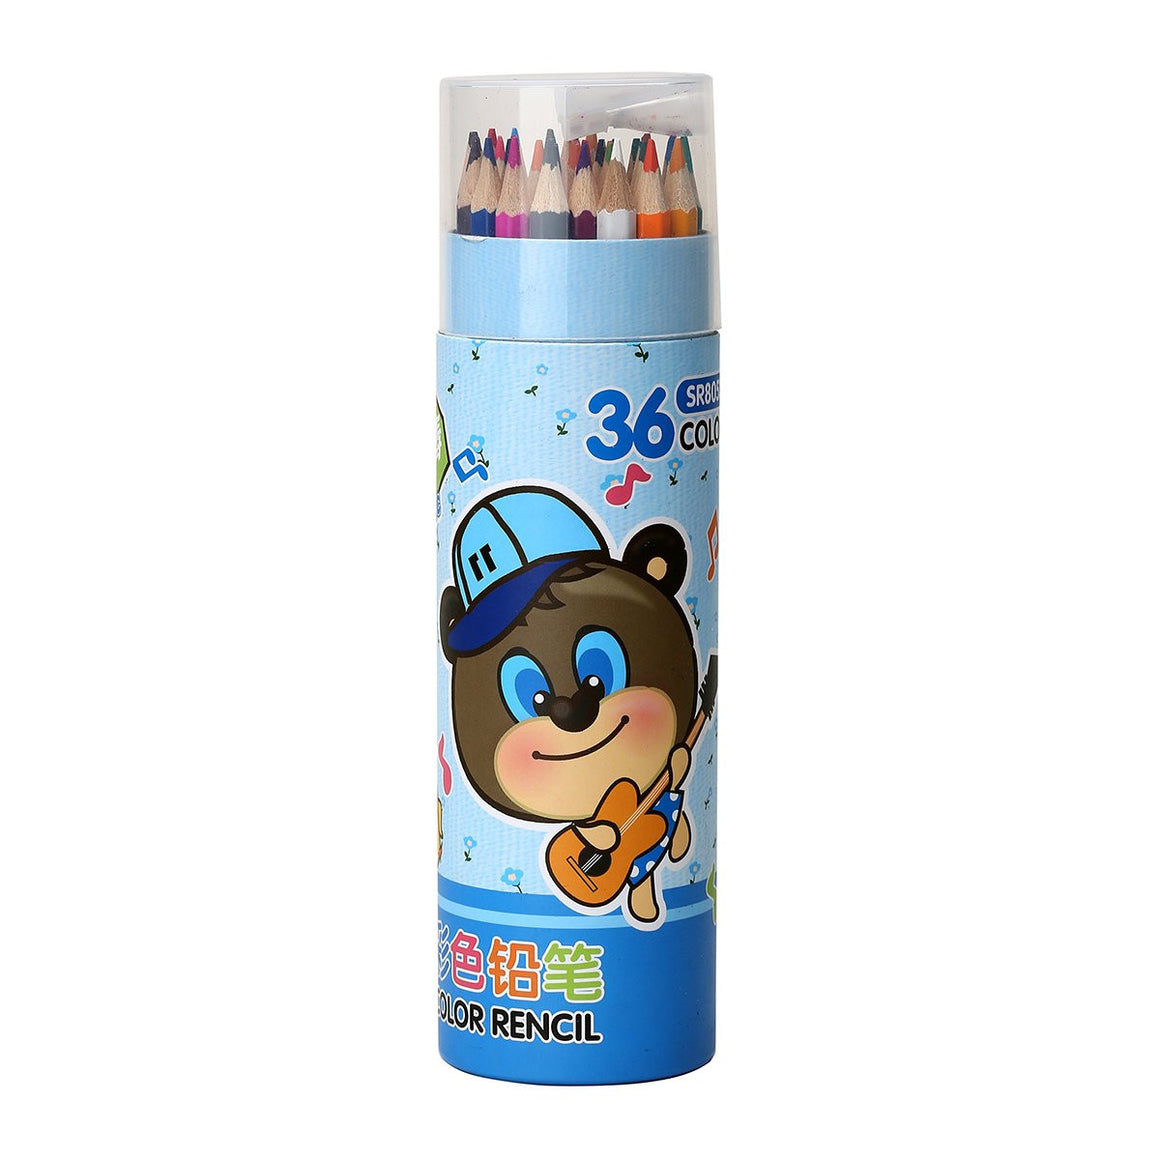 KALE Colored Pencils with Sharpener - 36 Pieces/Blue